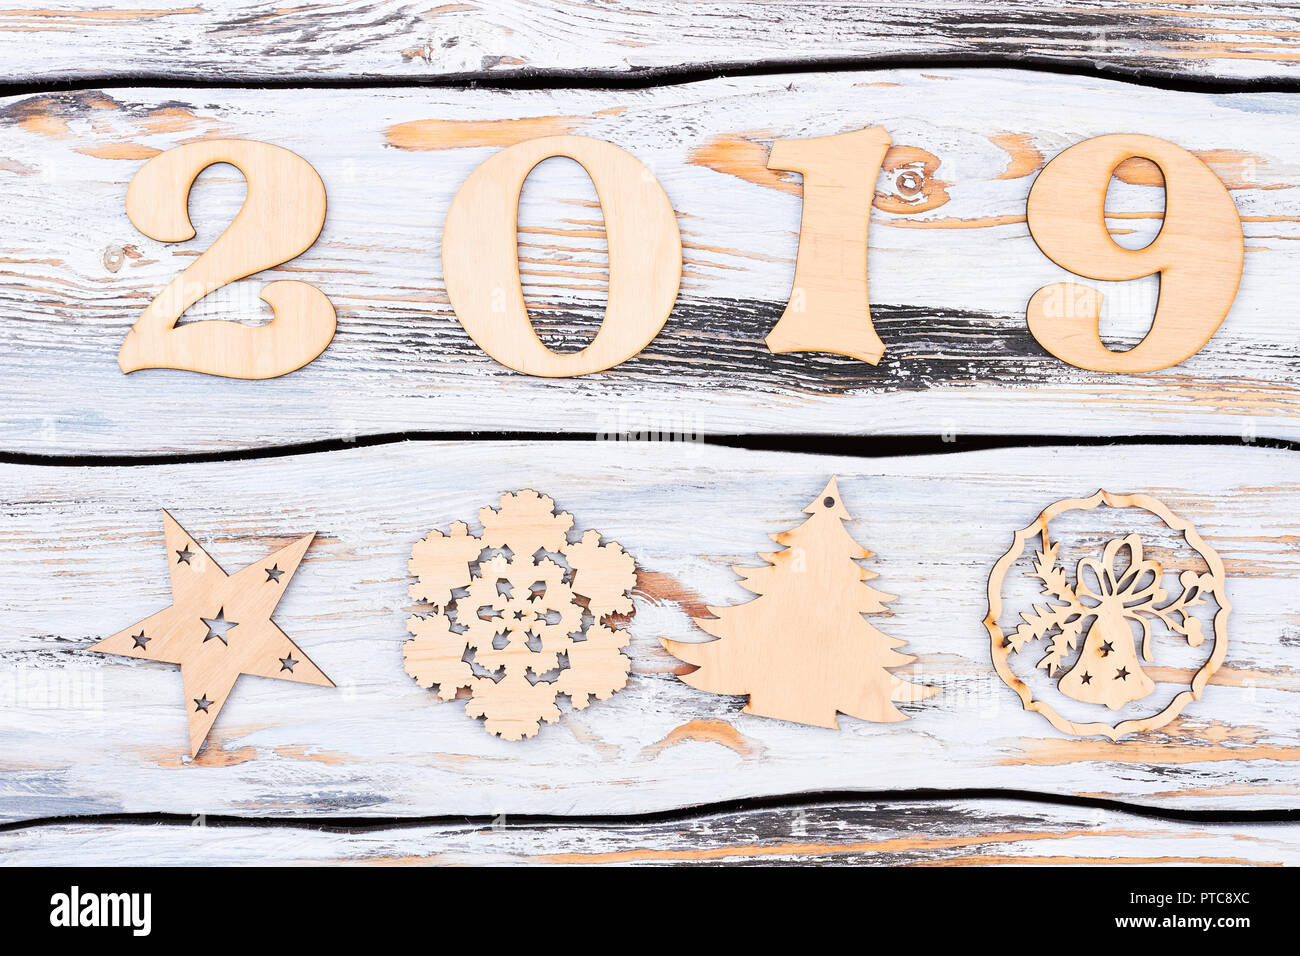 Wooden Number 2019 And New Year Figures New Year Number 2019 From The Wooden Digits And Carved Wooden Christmas Tree Snowflake Candles Deer On Vin